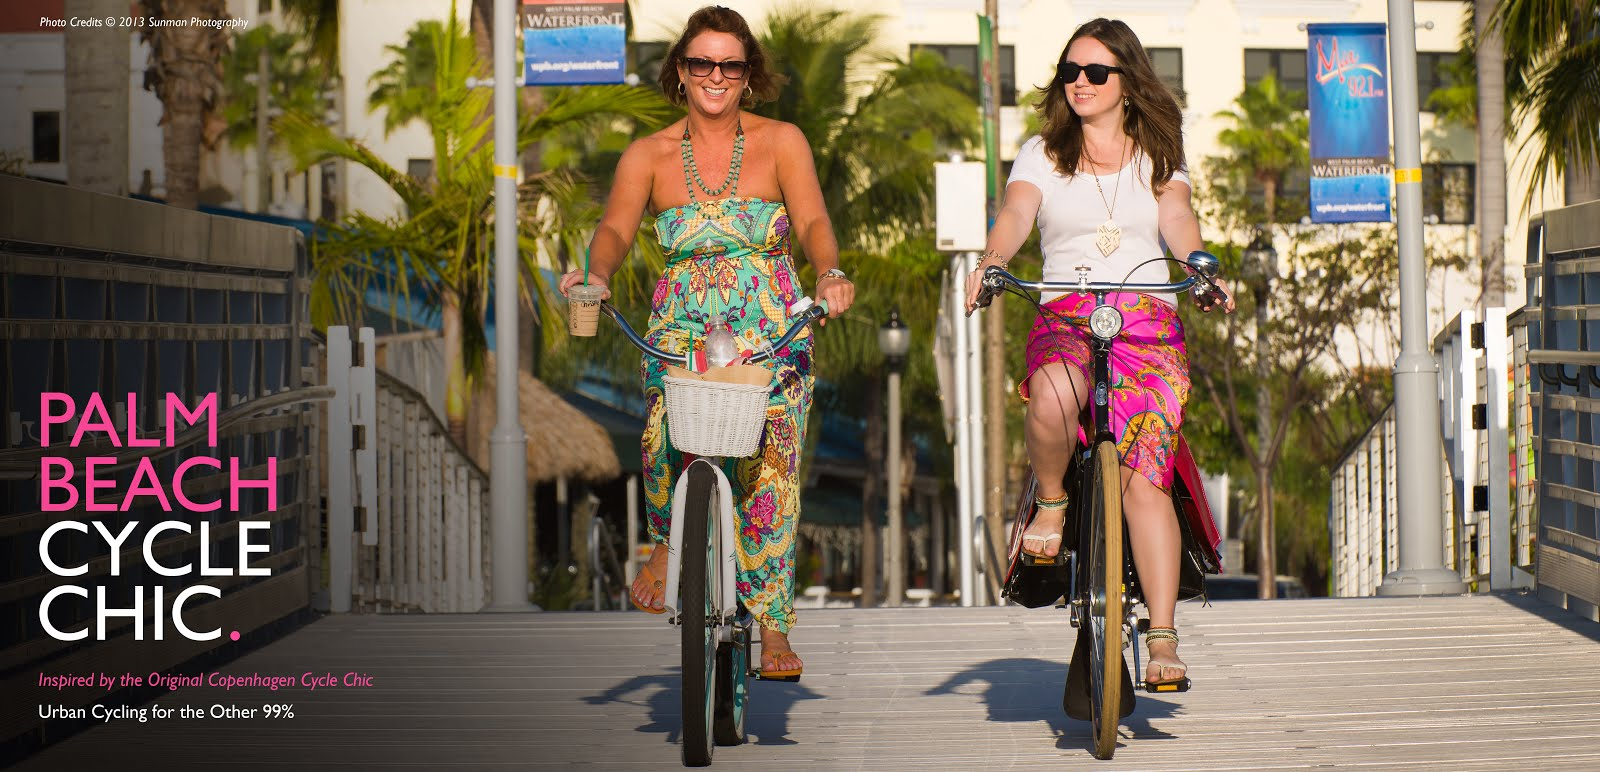 Palm Beach Cycle Chic